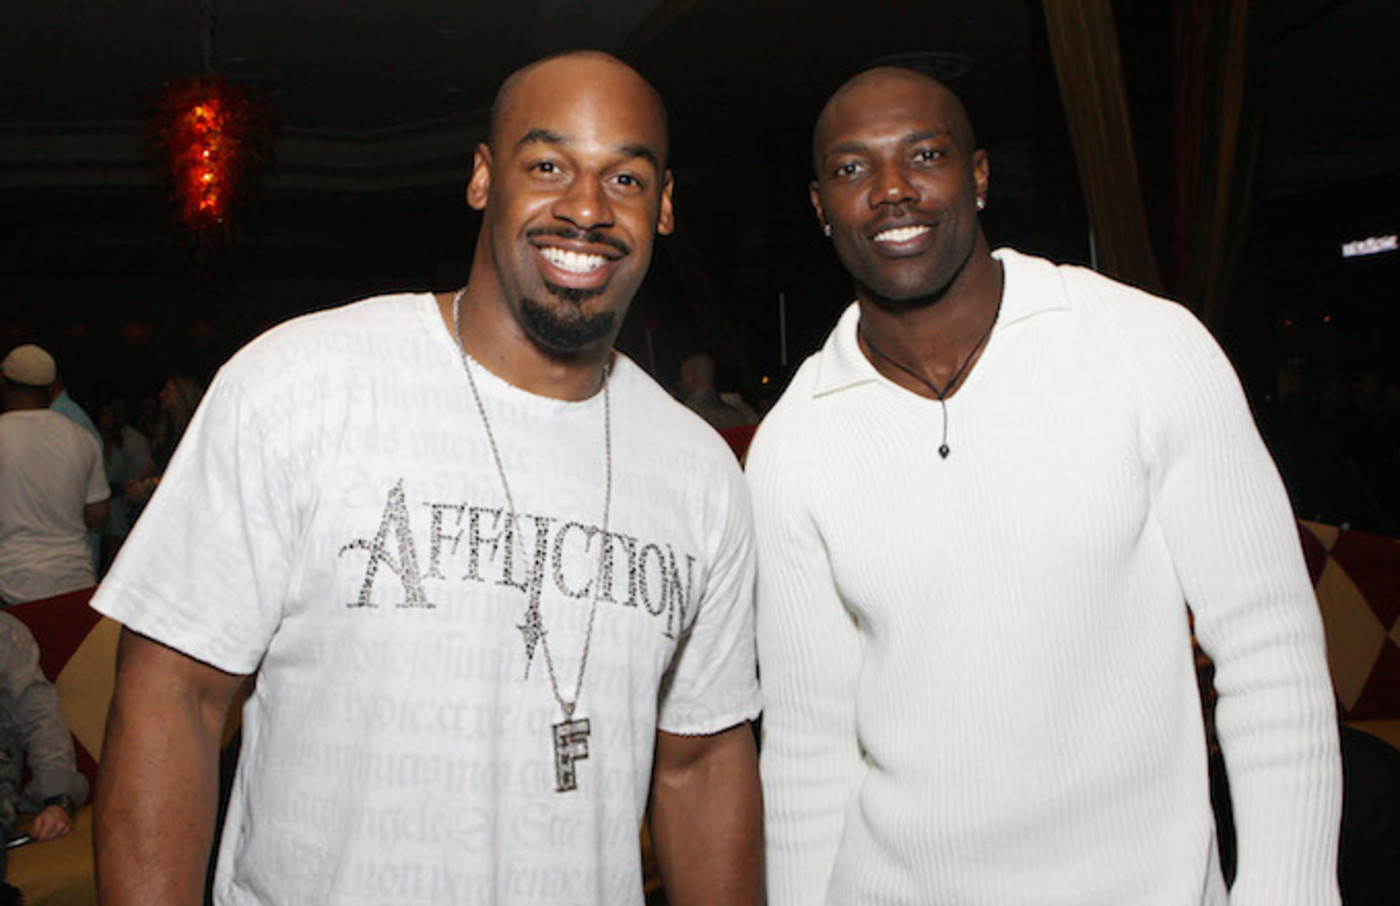 Donavan McNabb and Terrell Owens attend the Moves Magazine Annual Super Bowl Gala.